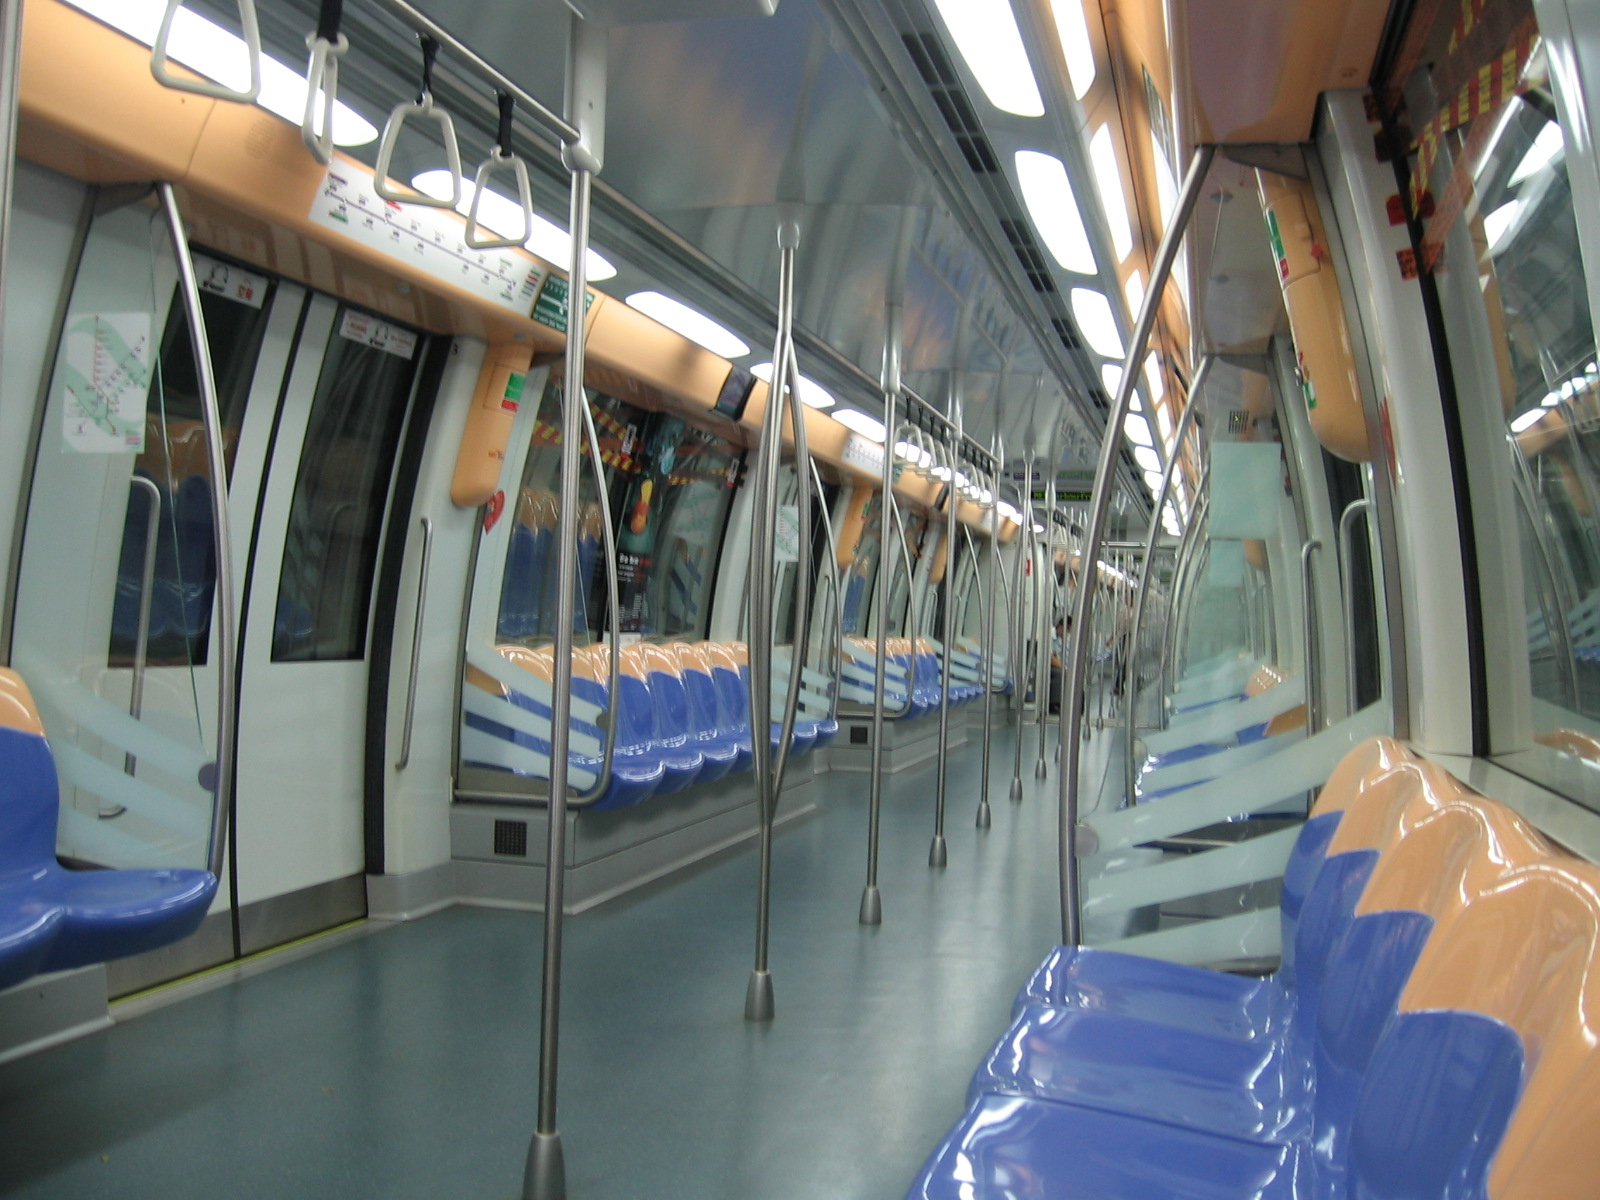 File:NORTH EAST LINE, Singapore, Train, Aug 06.JPG - Wikipedia ...